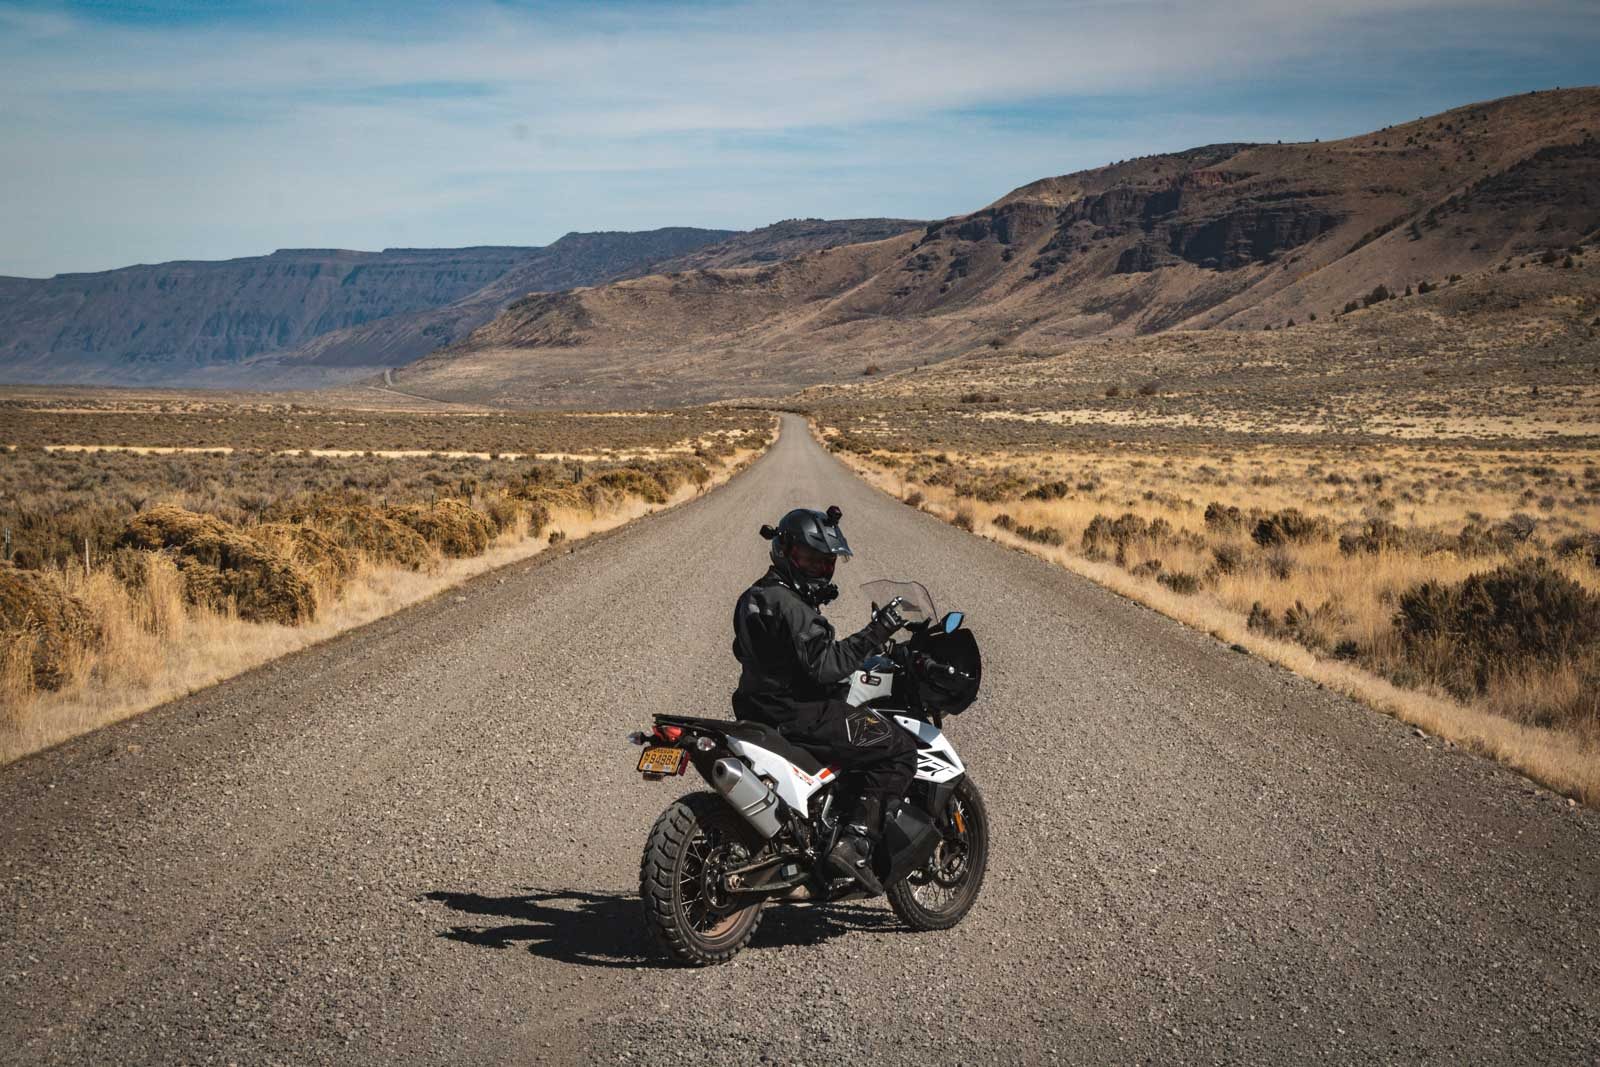 Garrett riding the KTM 790 Adventure out by Hart Mountain